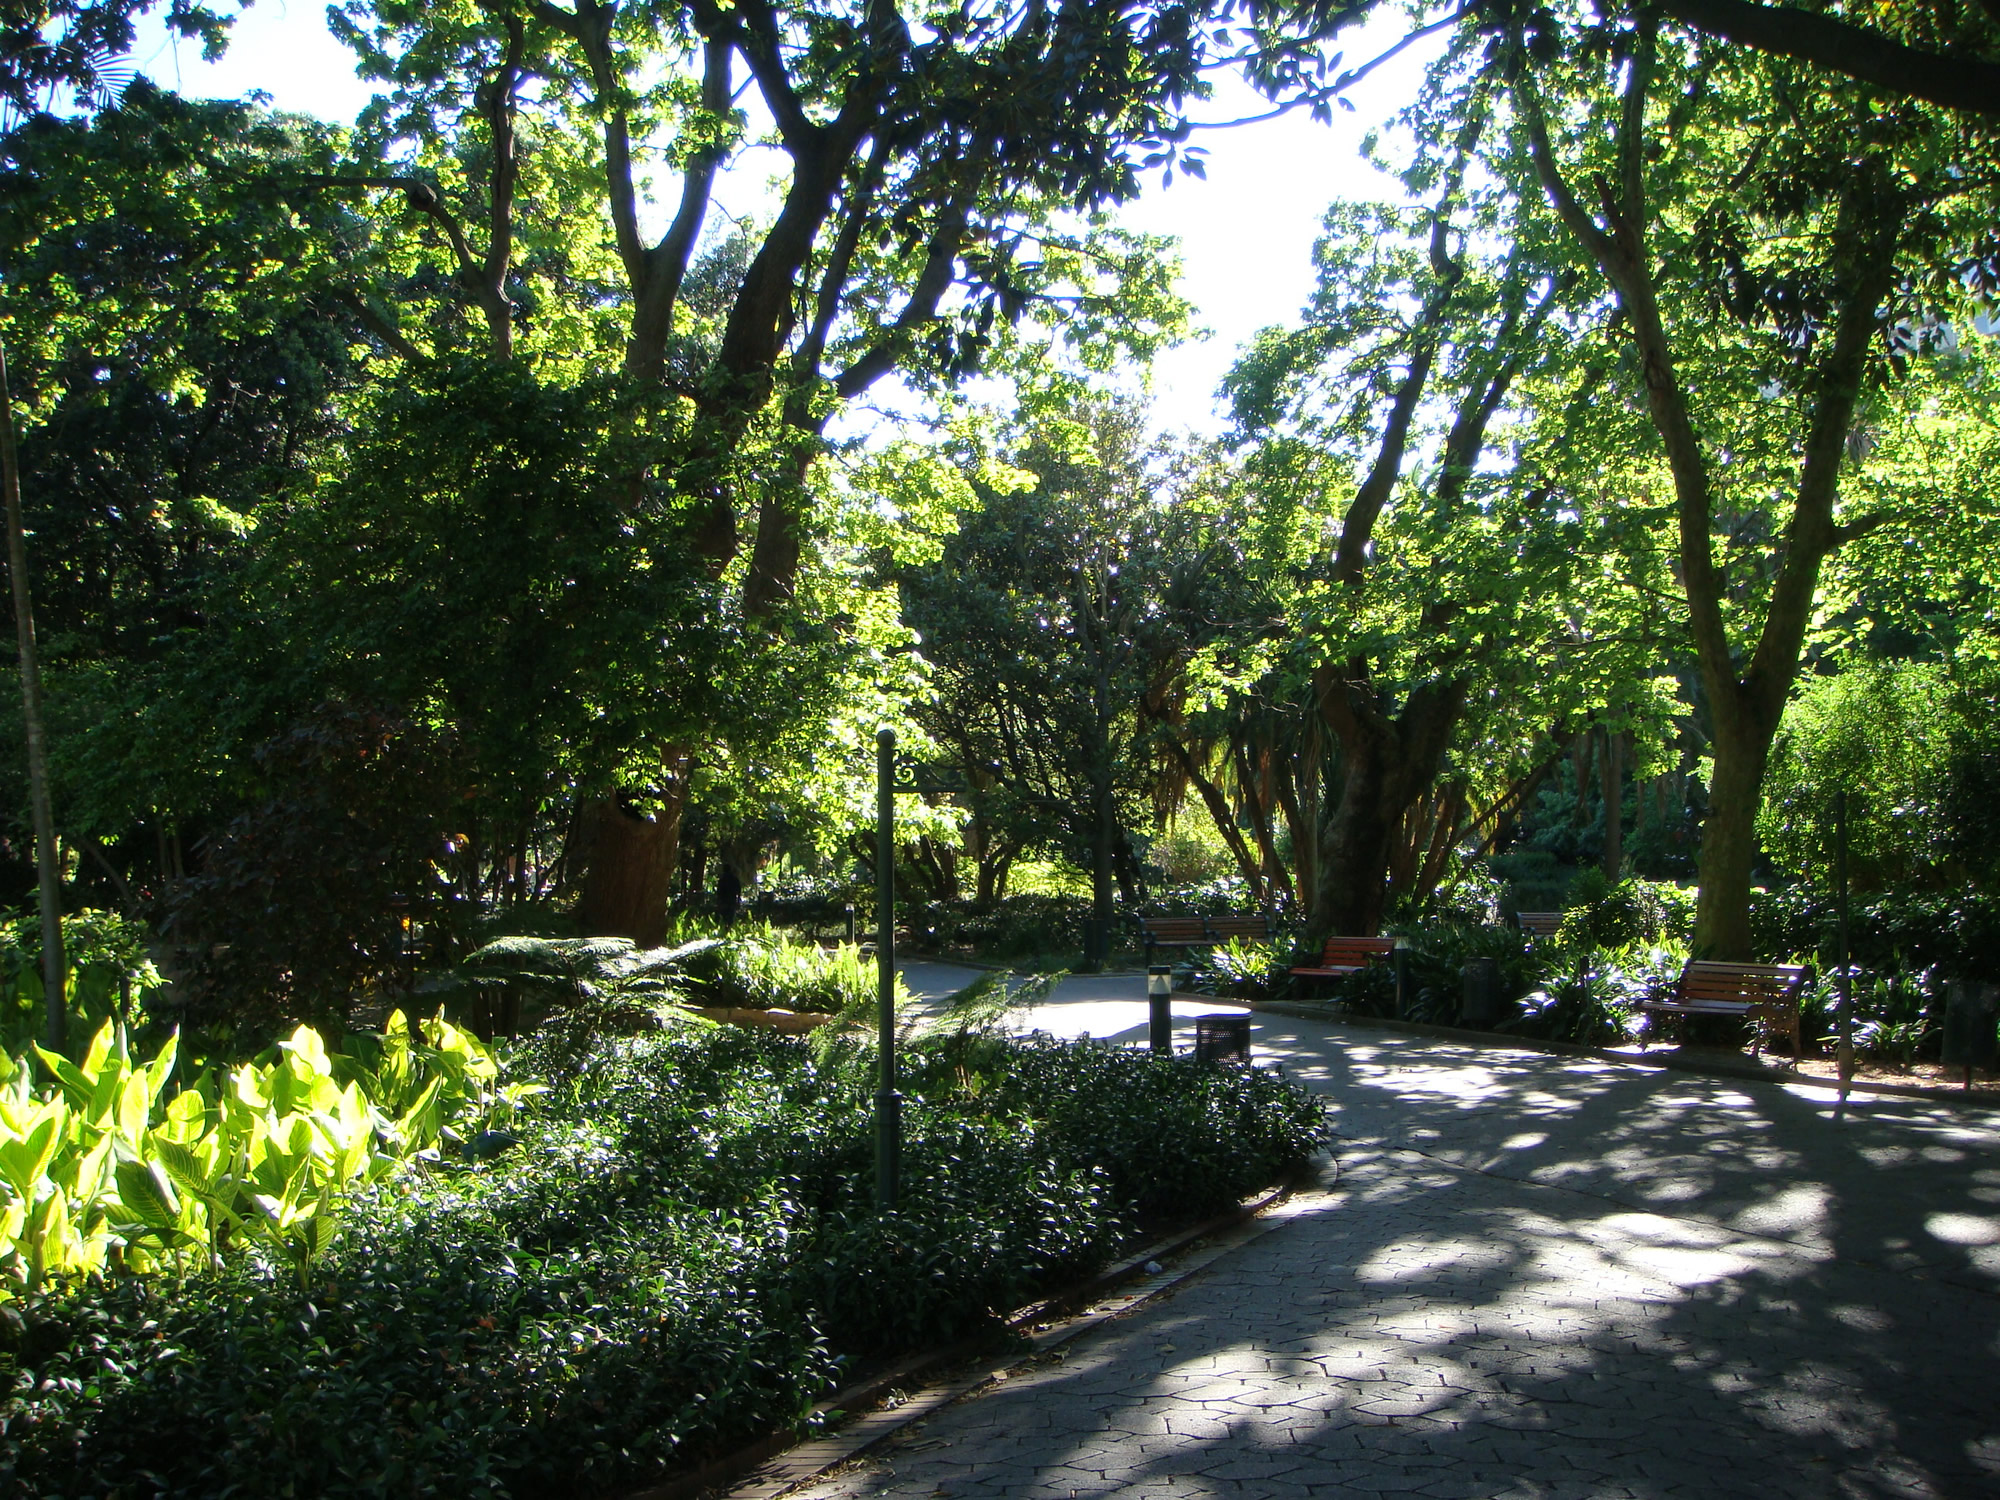 Walking in the Company Gardens